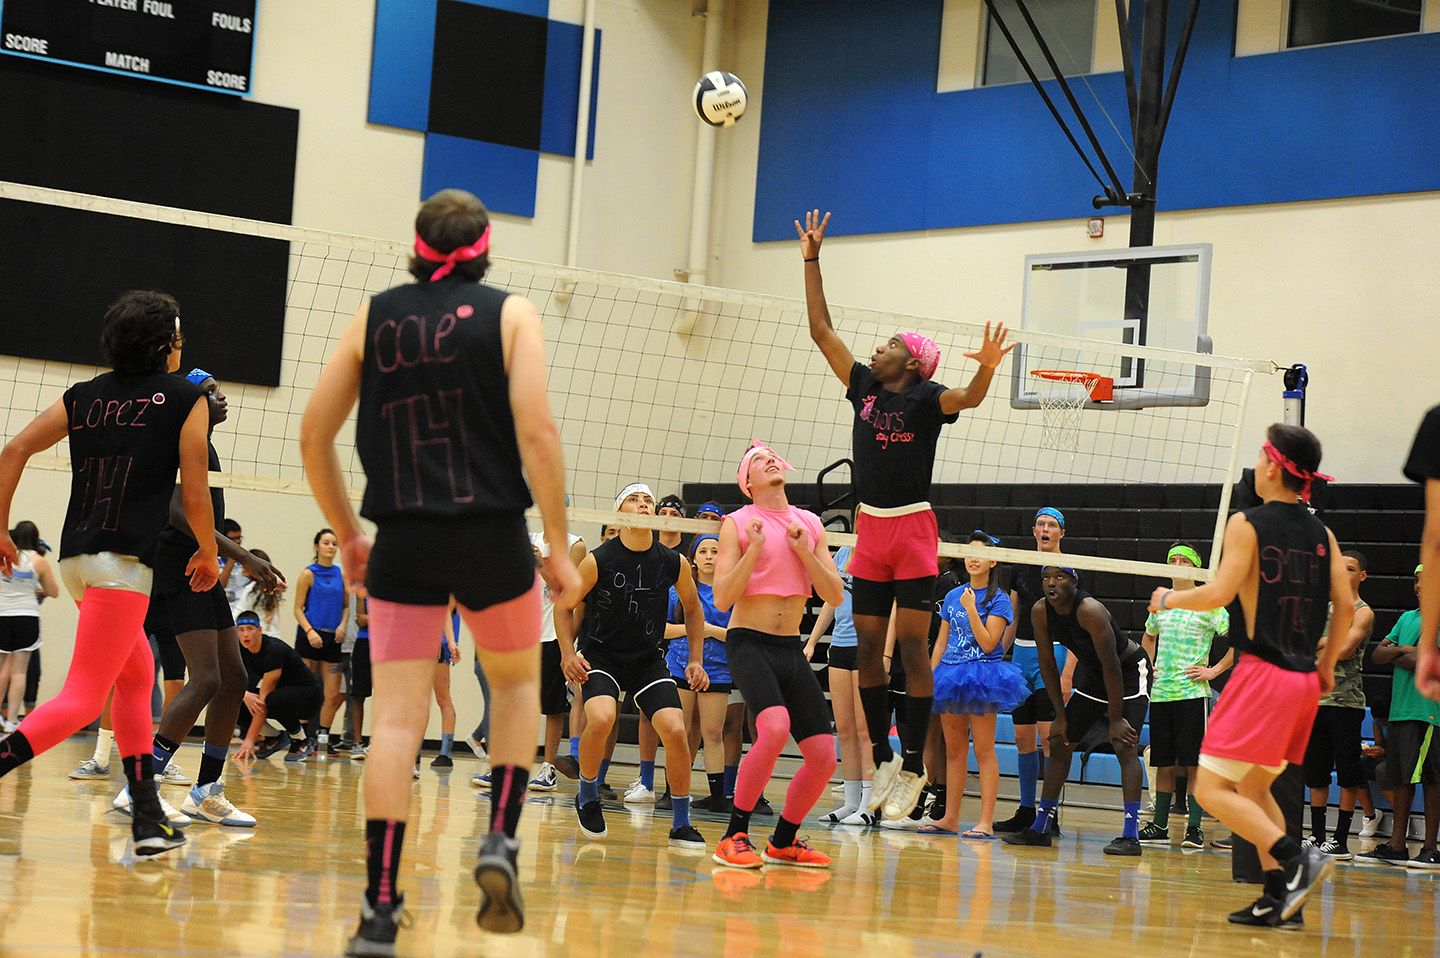 Seniors Pink Compete Against Sophomores Blue Oct 2 During A Peach Fuzz Volleyball Game At Vista Ridge High S Volleyball Tournaments Powder Puff Volleyball